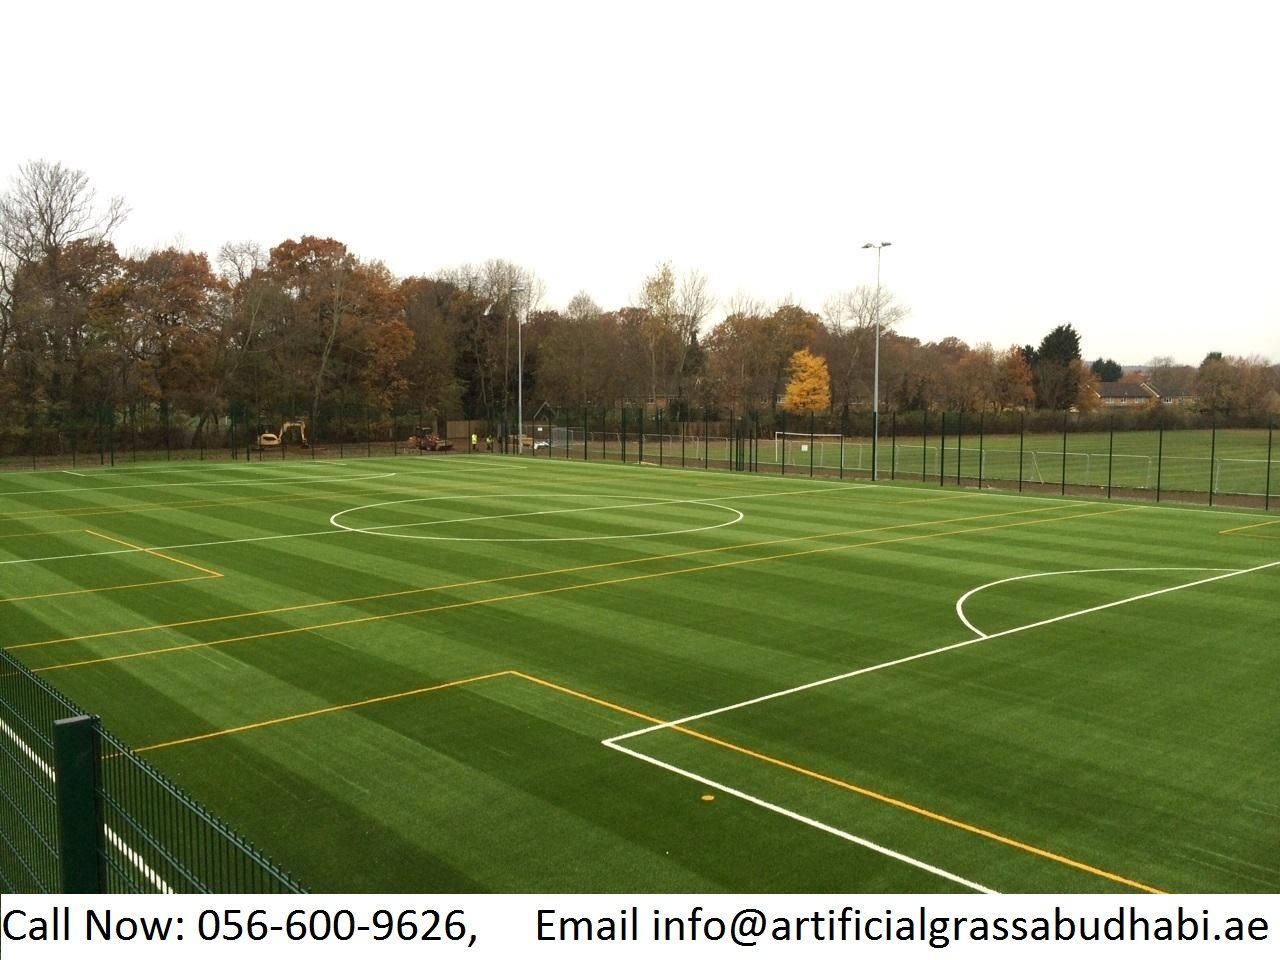 Artificial Grass Dubai Offers The Best Quality Of Synthetic Grass And Artificial Football Turf Used For In 2020 Artificial Grass Synthetic Grass Best Artificial Grass